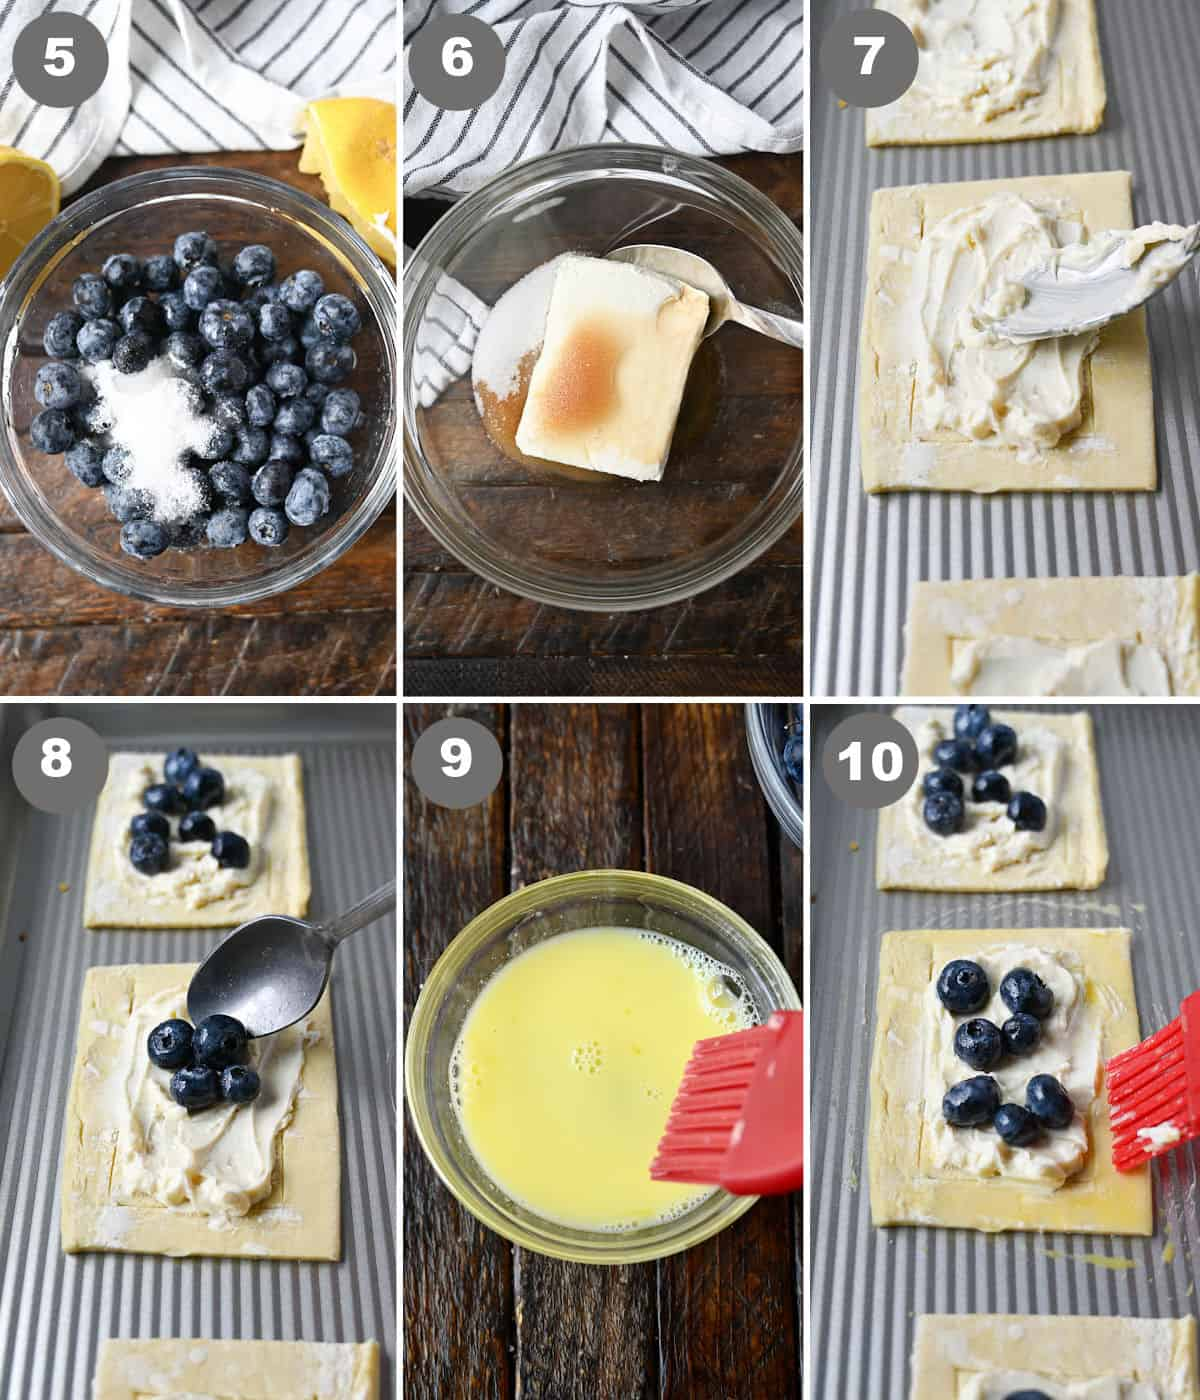 Six process photos. First one a small bowl with fresh blueberries and sugar. Second one, pastry filling ingredients in a bowl ready to be mixed. Third one, cream cheese filling being spread into the center on the pastry. Fourth one, blueberries placed on top of the filling. Fifth one, egg wash in a small bowl with a pastry brush. Sixth one, egg wash being brushed on the edges of the pastry.